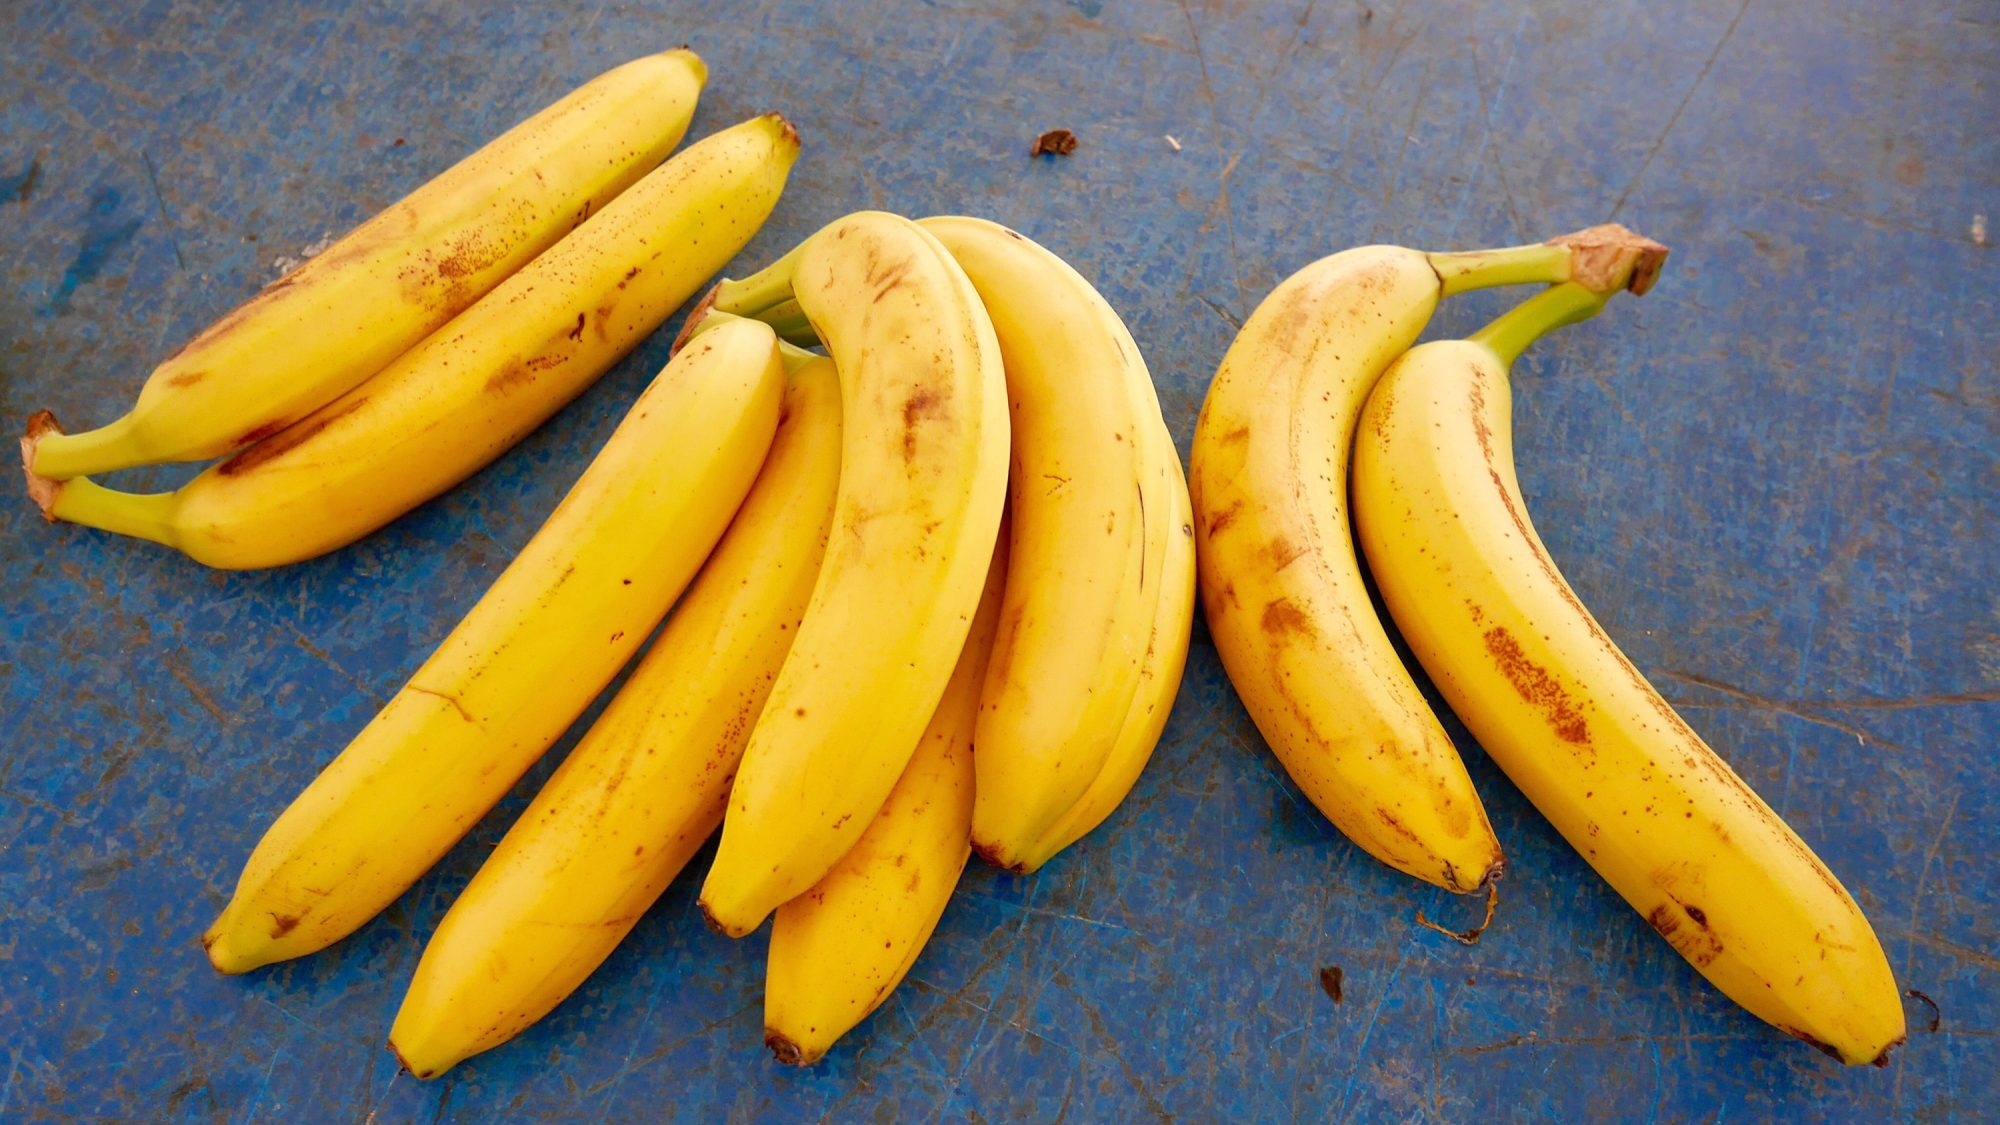 Bananas Could Be Heading for Extinction